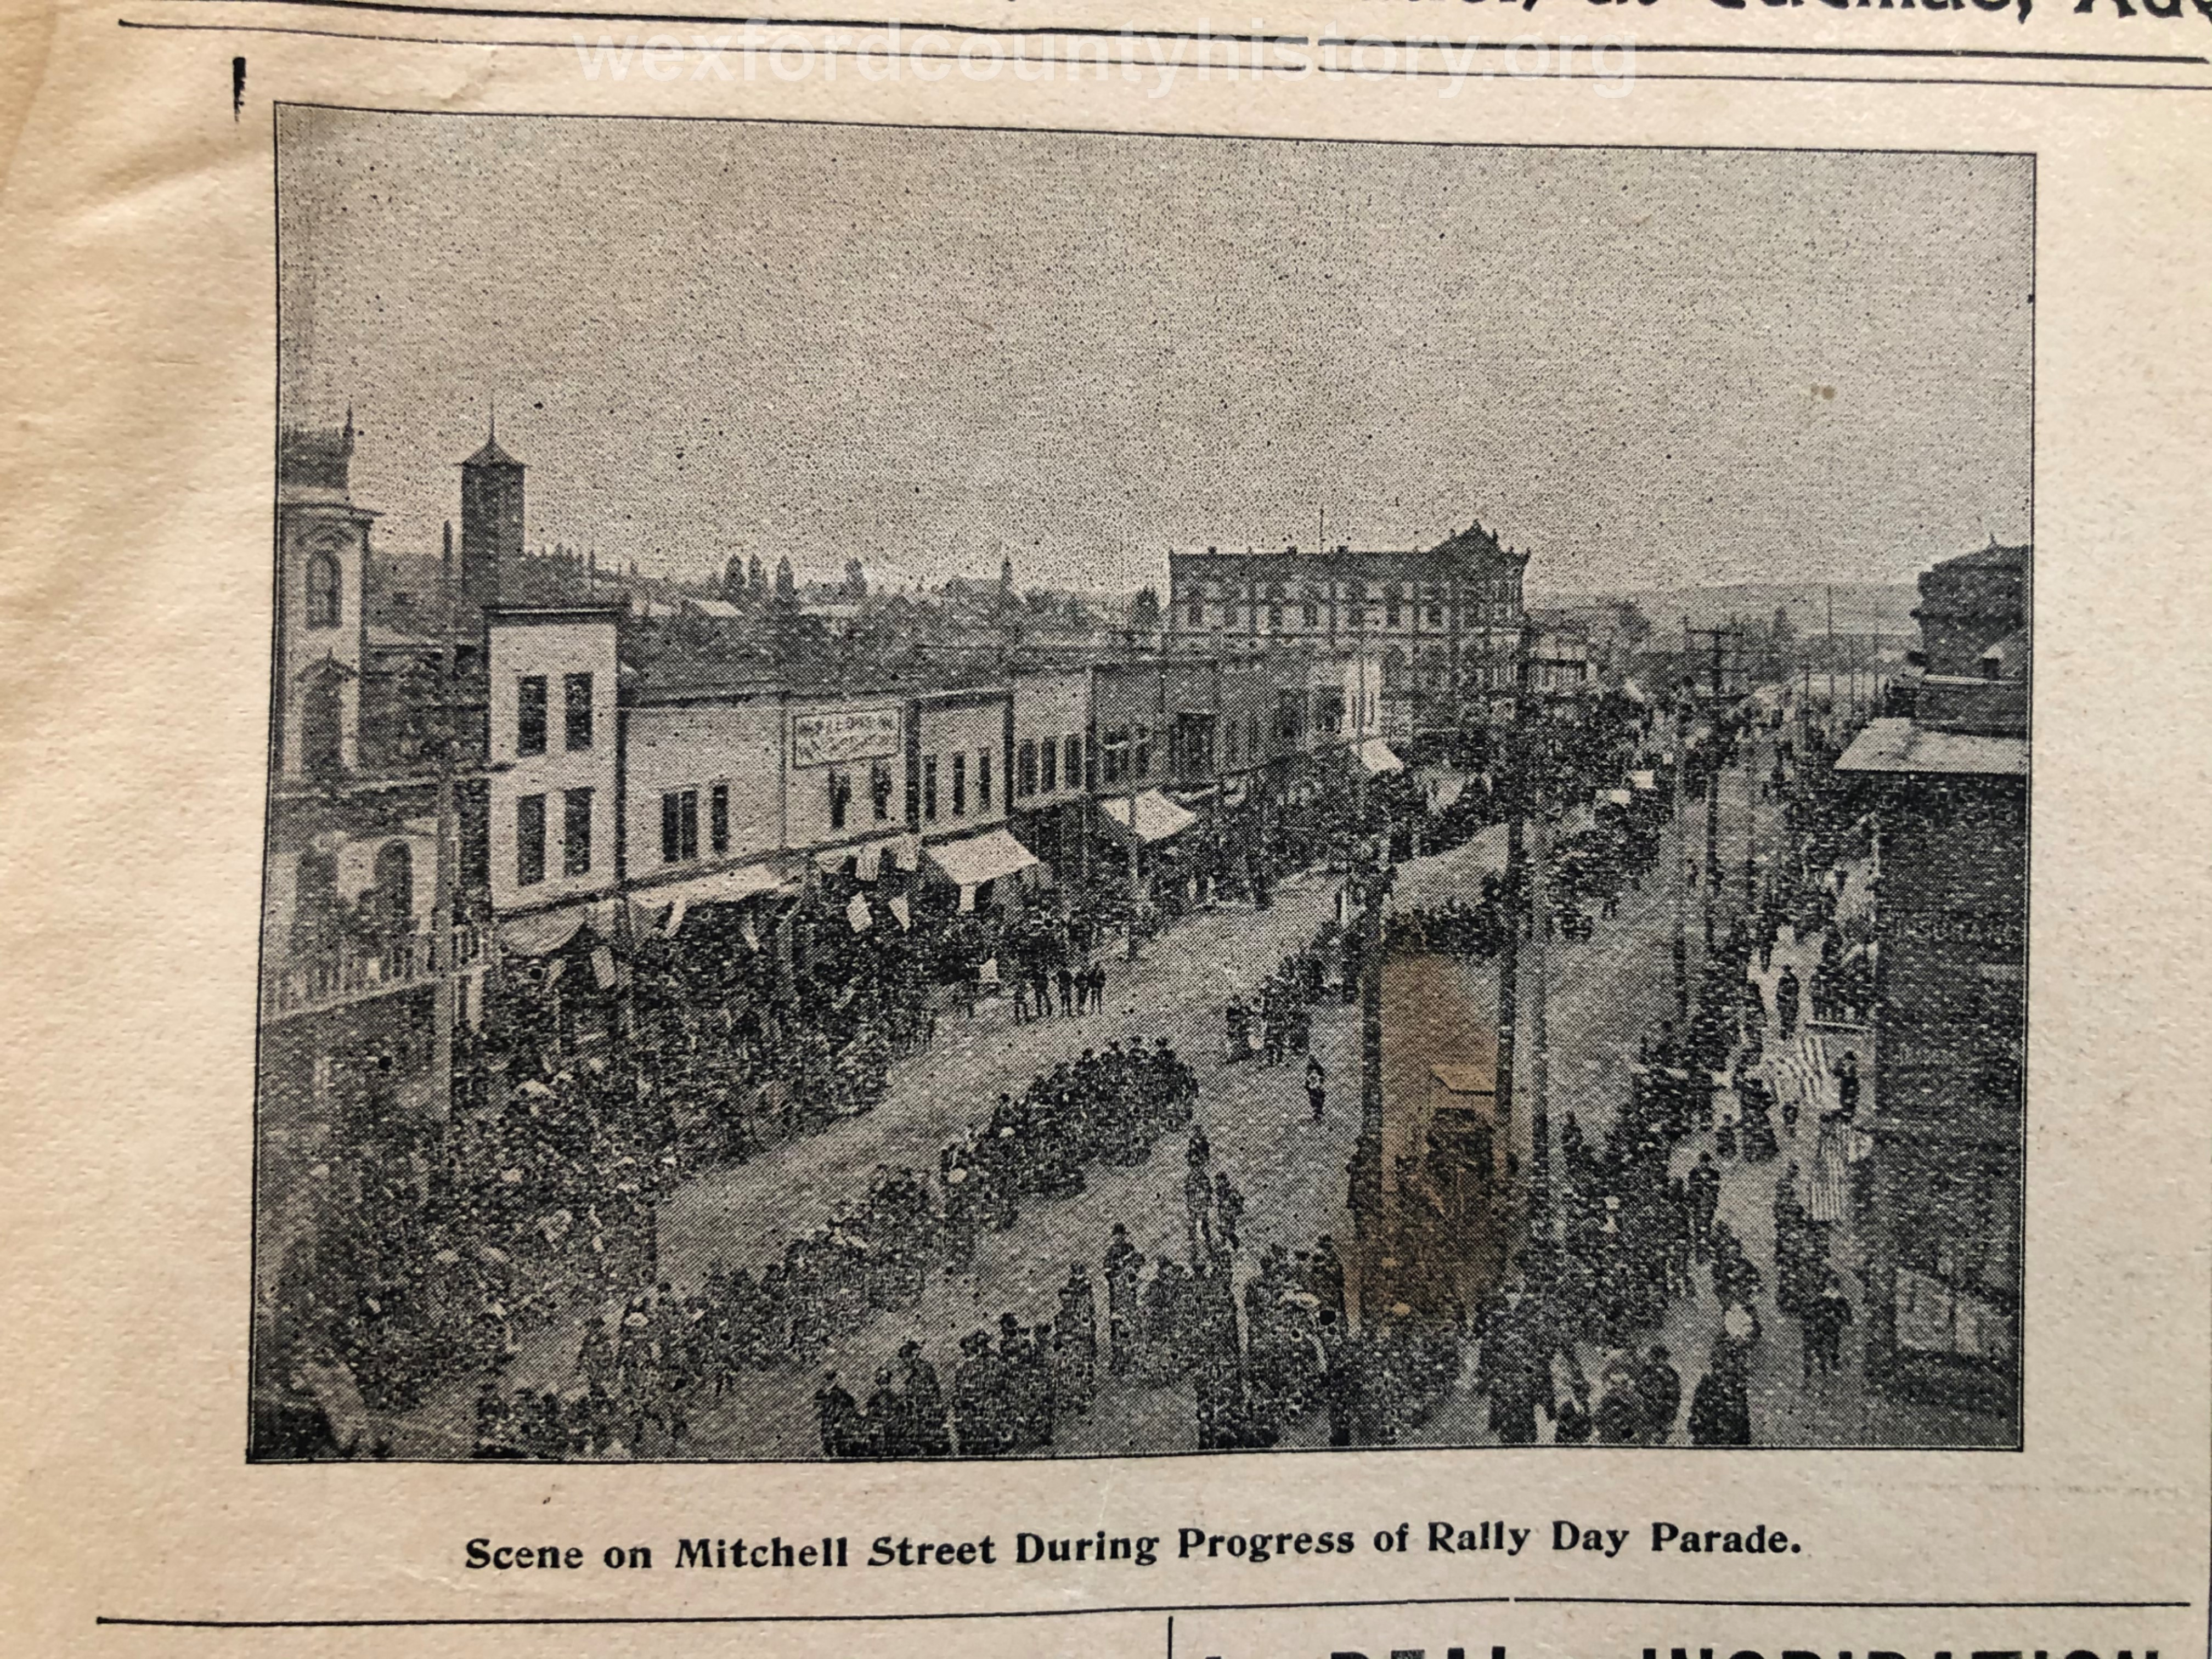 Cadillac-Parade-1897-08-27-Rally-Day-Herald-Picture-2